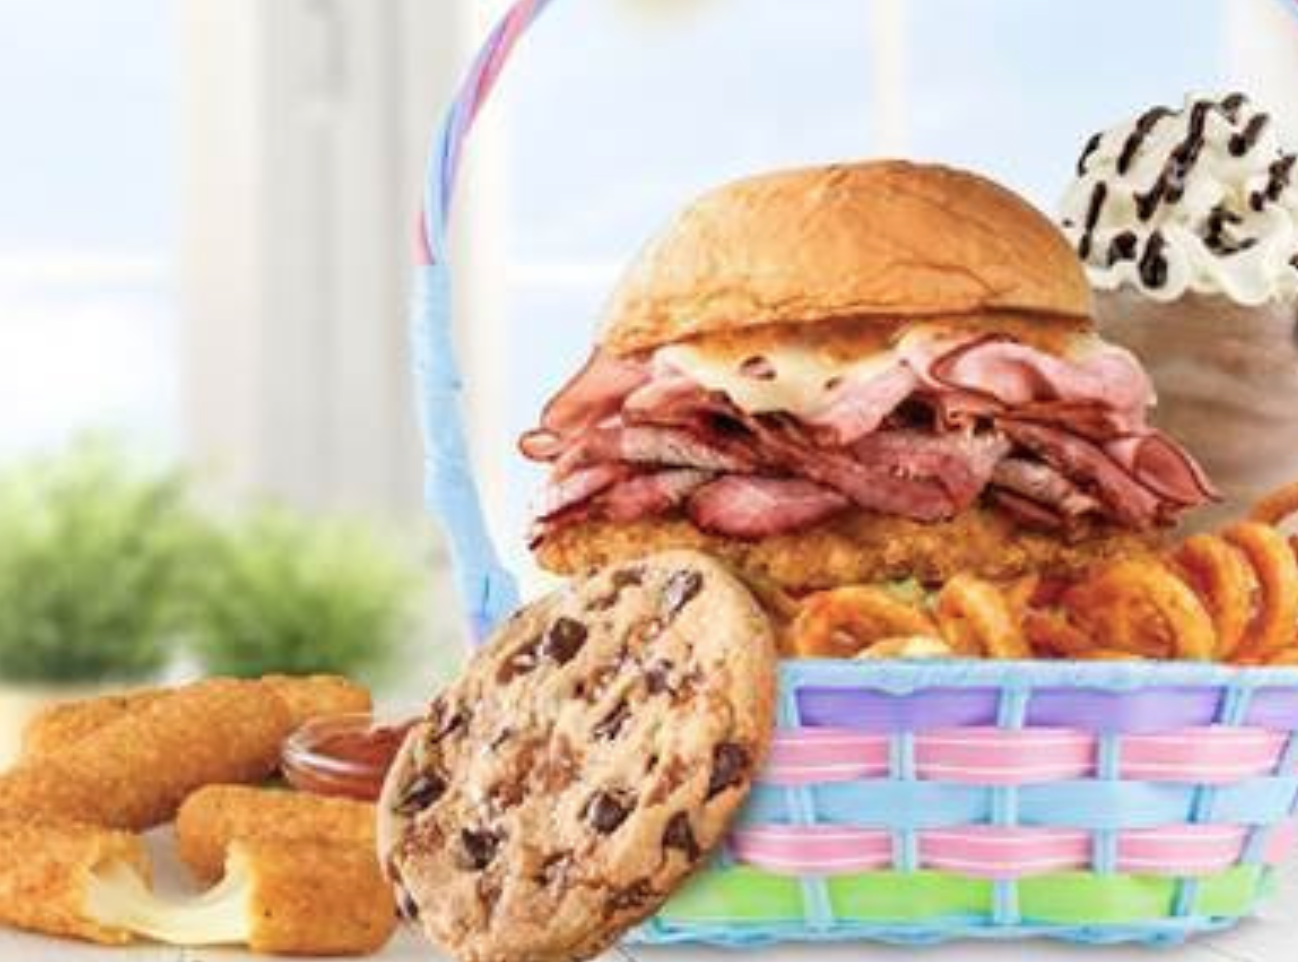 arby's easter